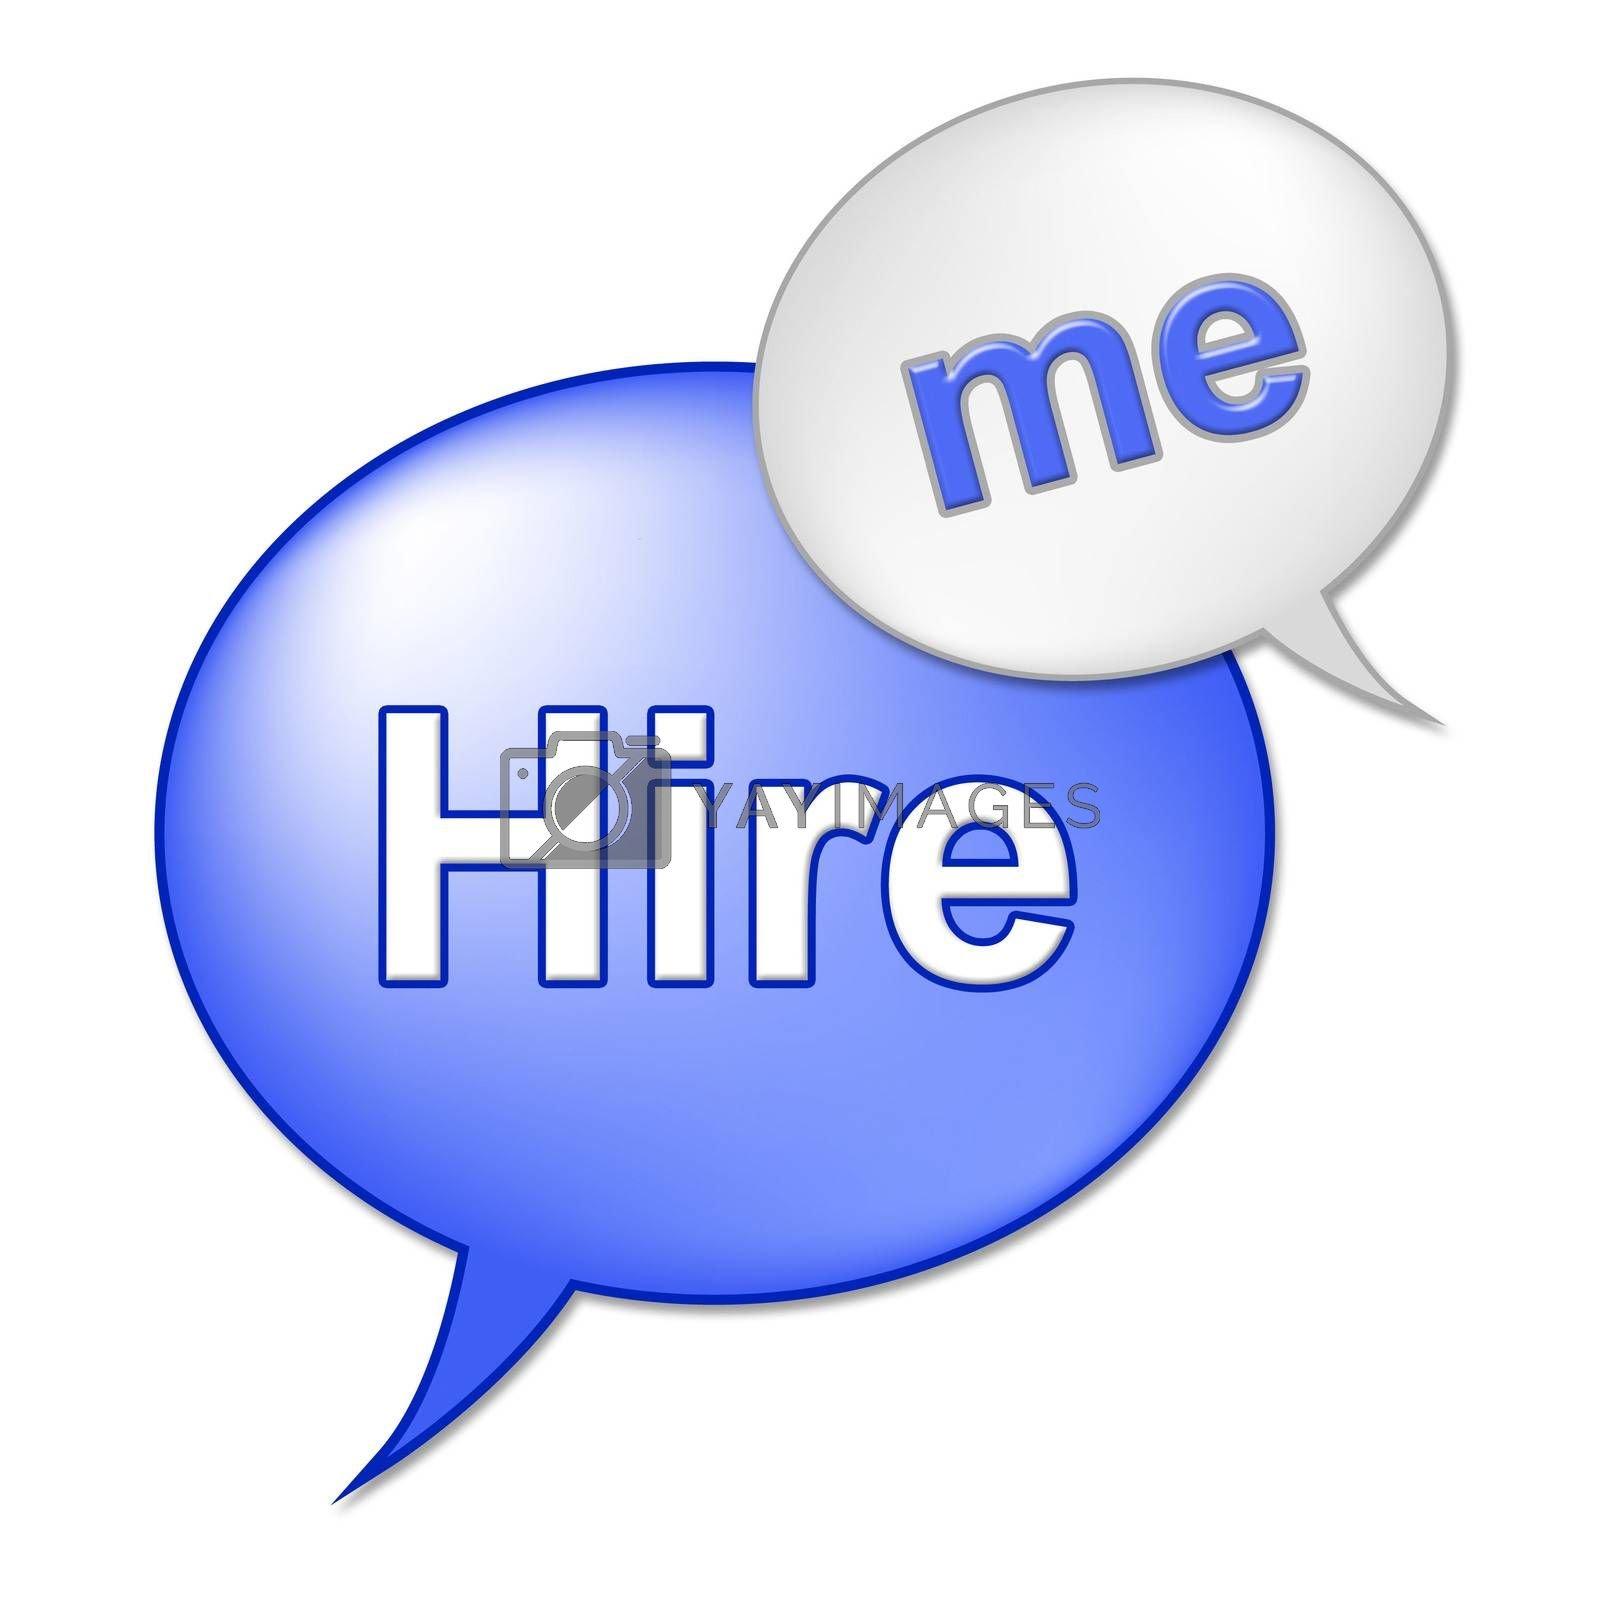 Hire Me Sign Indicates Job Applicant And Employment by stuartmiles